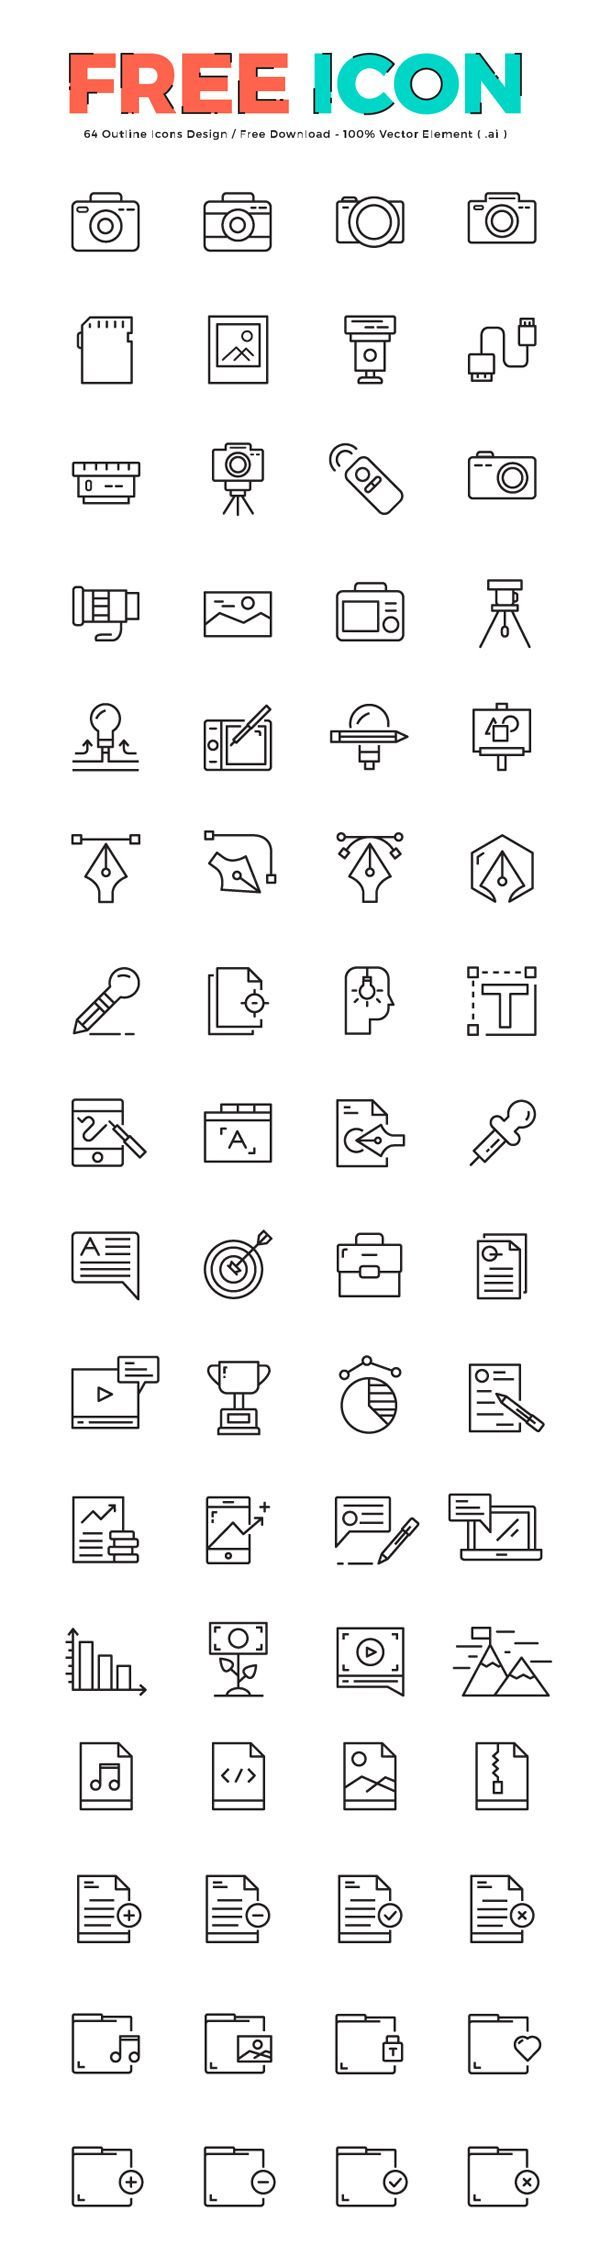 64 free outline icons if you like ux design or design thinking